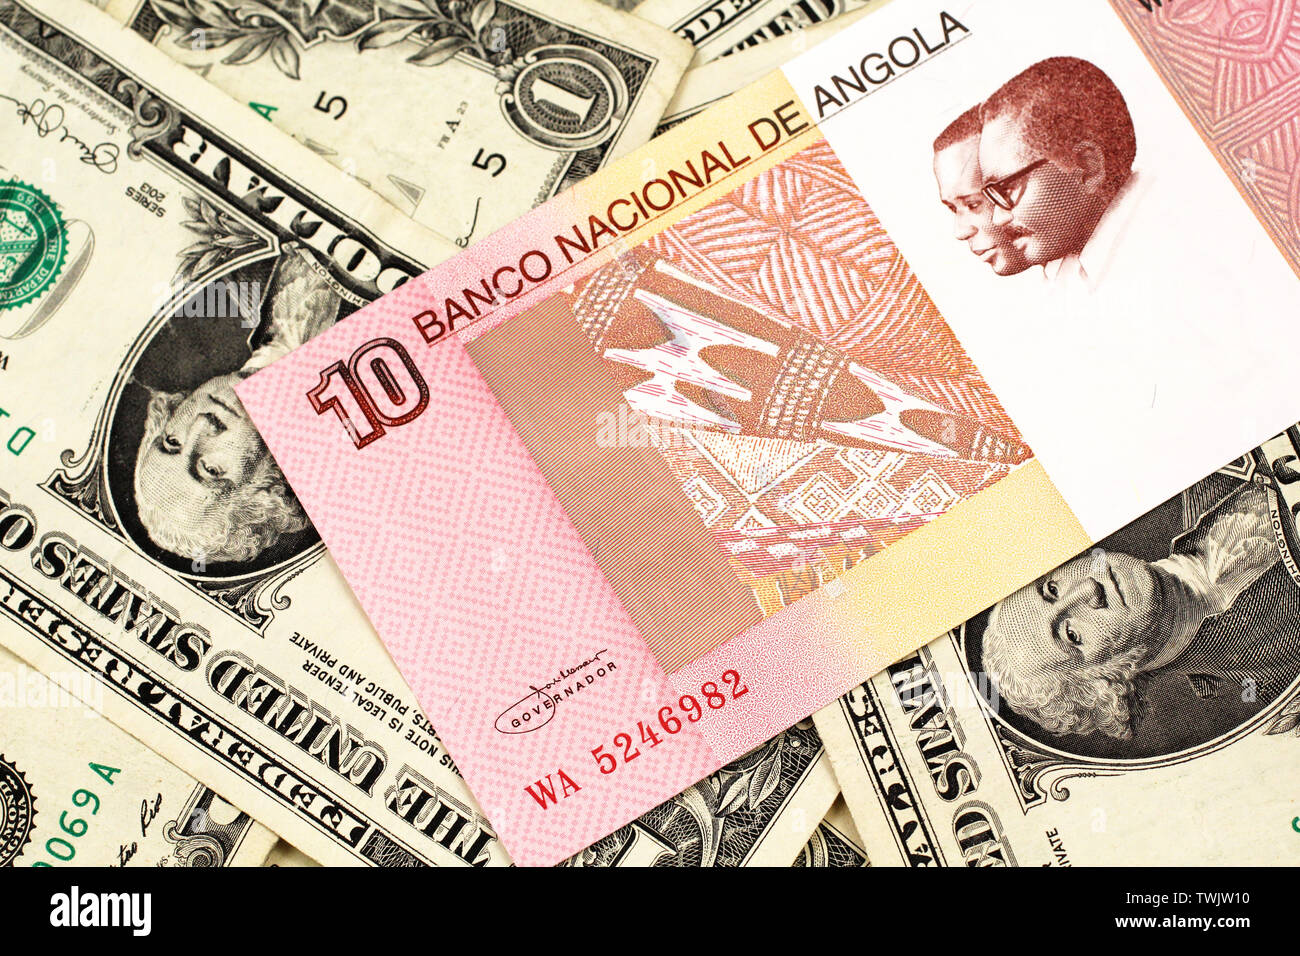 An red and white ten Angolan kwanza bank note on a background of American one dollar bills Stock Photo